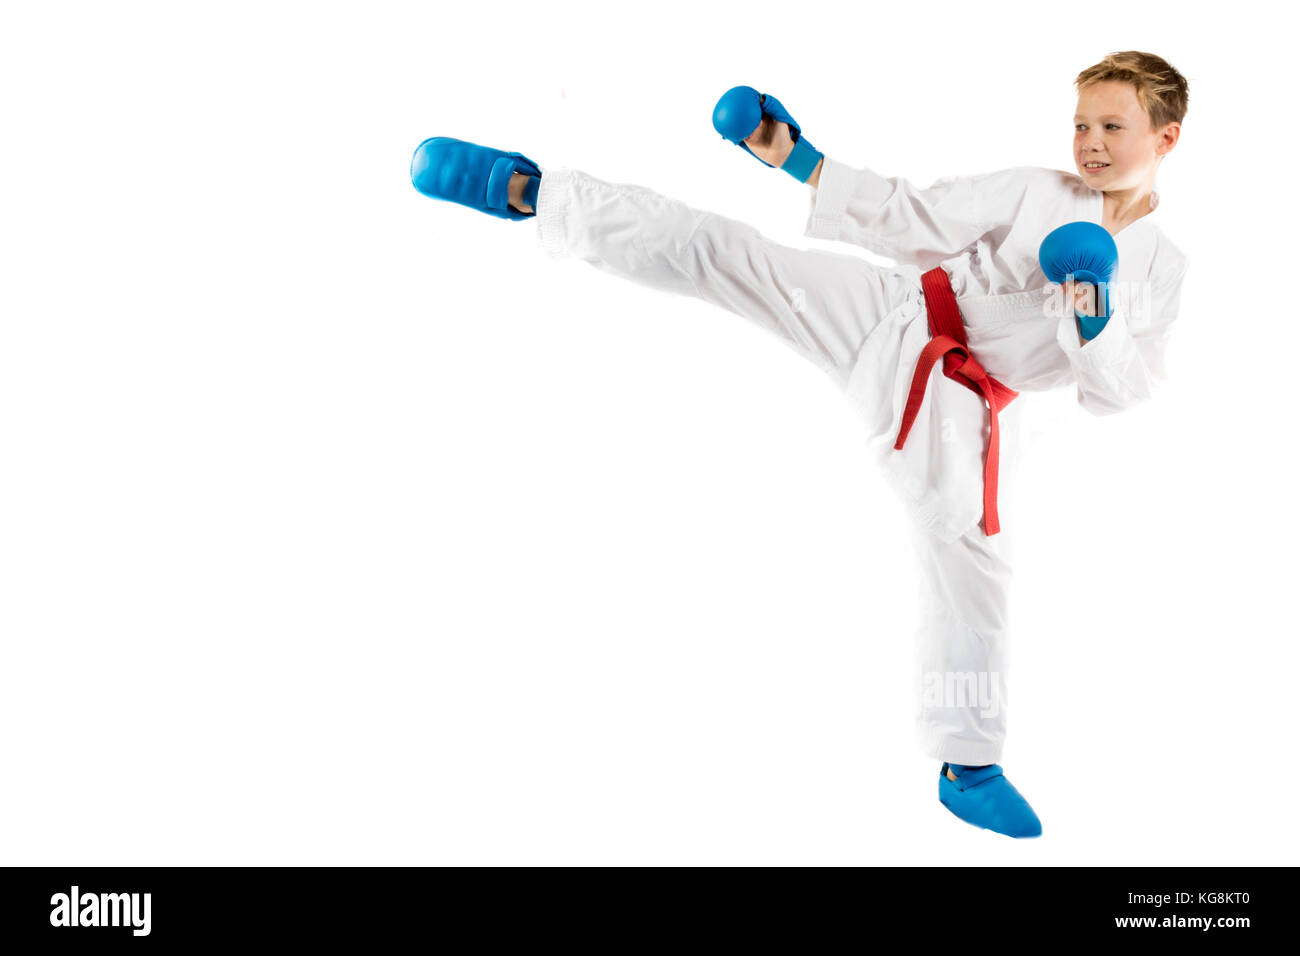 Pre-teen boy doing karate on a white background - Stock Image